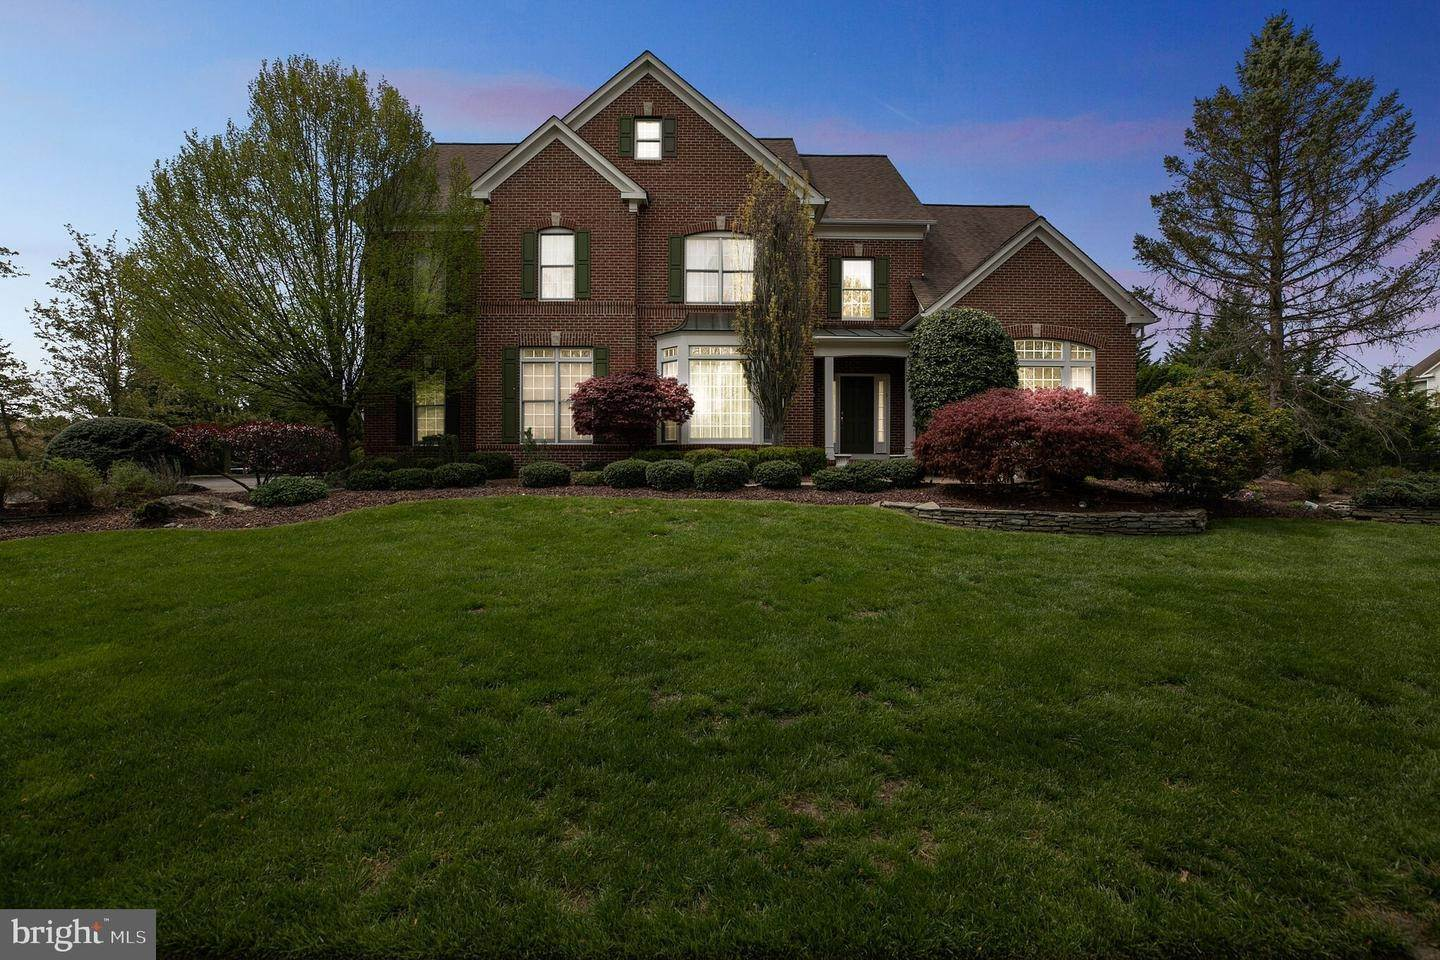 Detached House for Sale at 5 HOWELL Court Princeton Junction, New Jersey 08550 United States